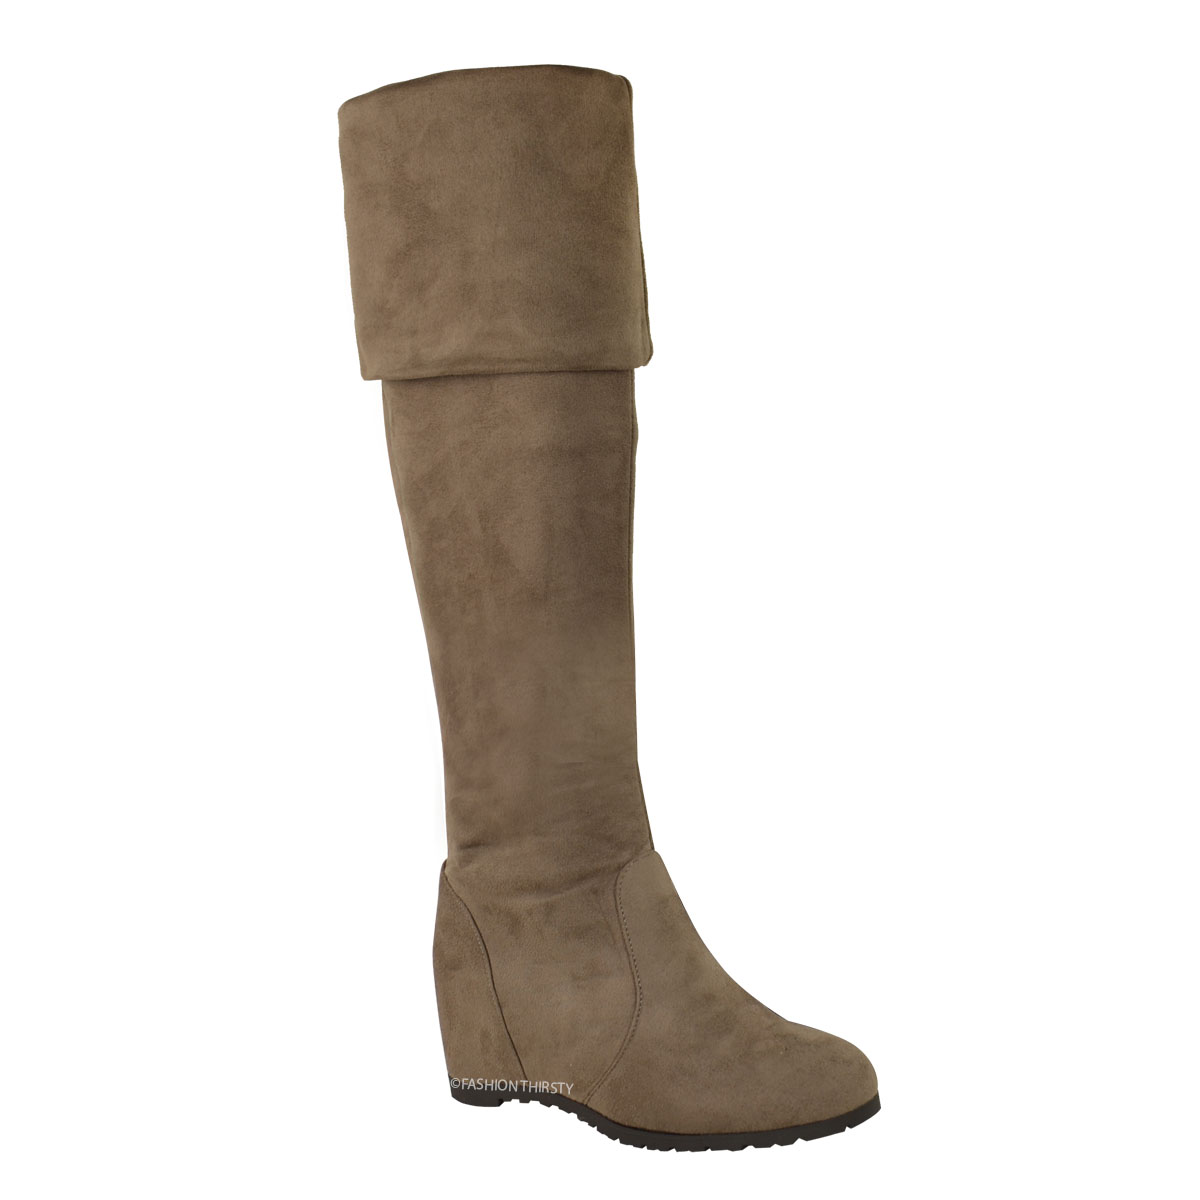 WOMENS LADES WEDGE THIGH OVER THE KNEE HIGH BOOTS MID HEEL PULL ON ...